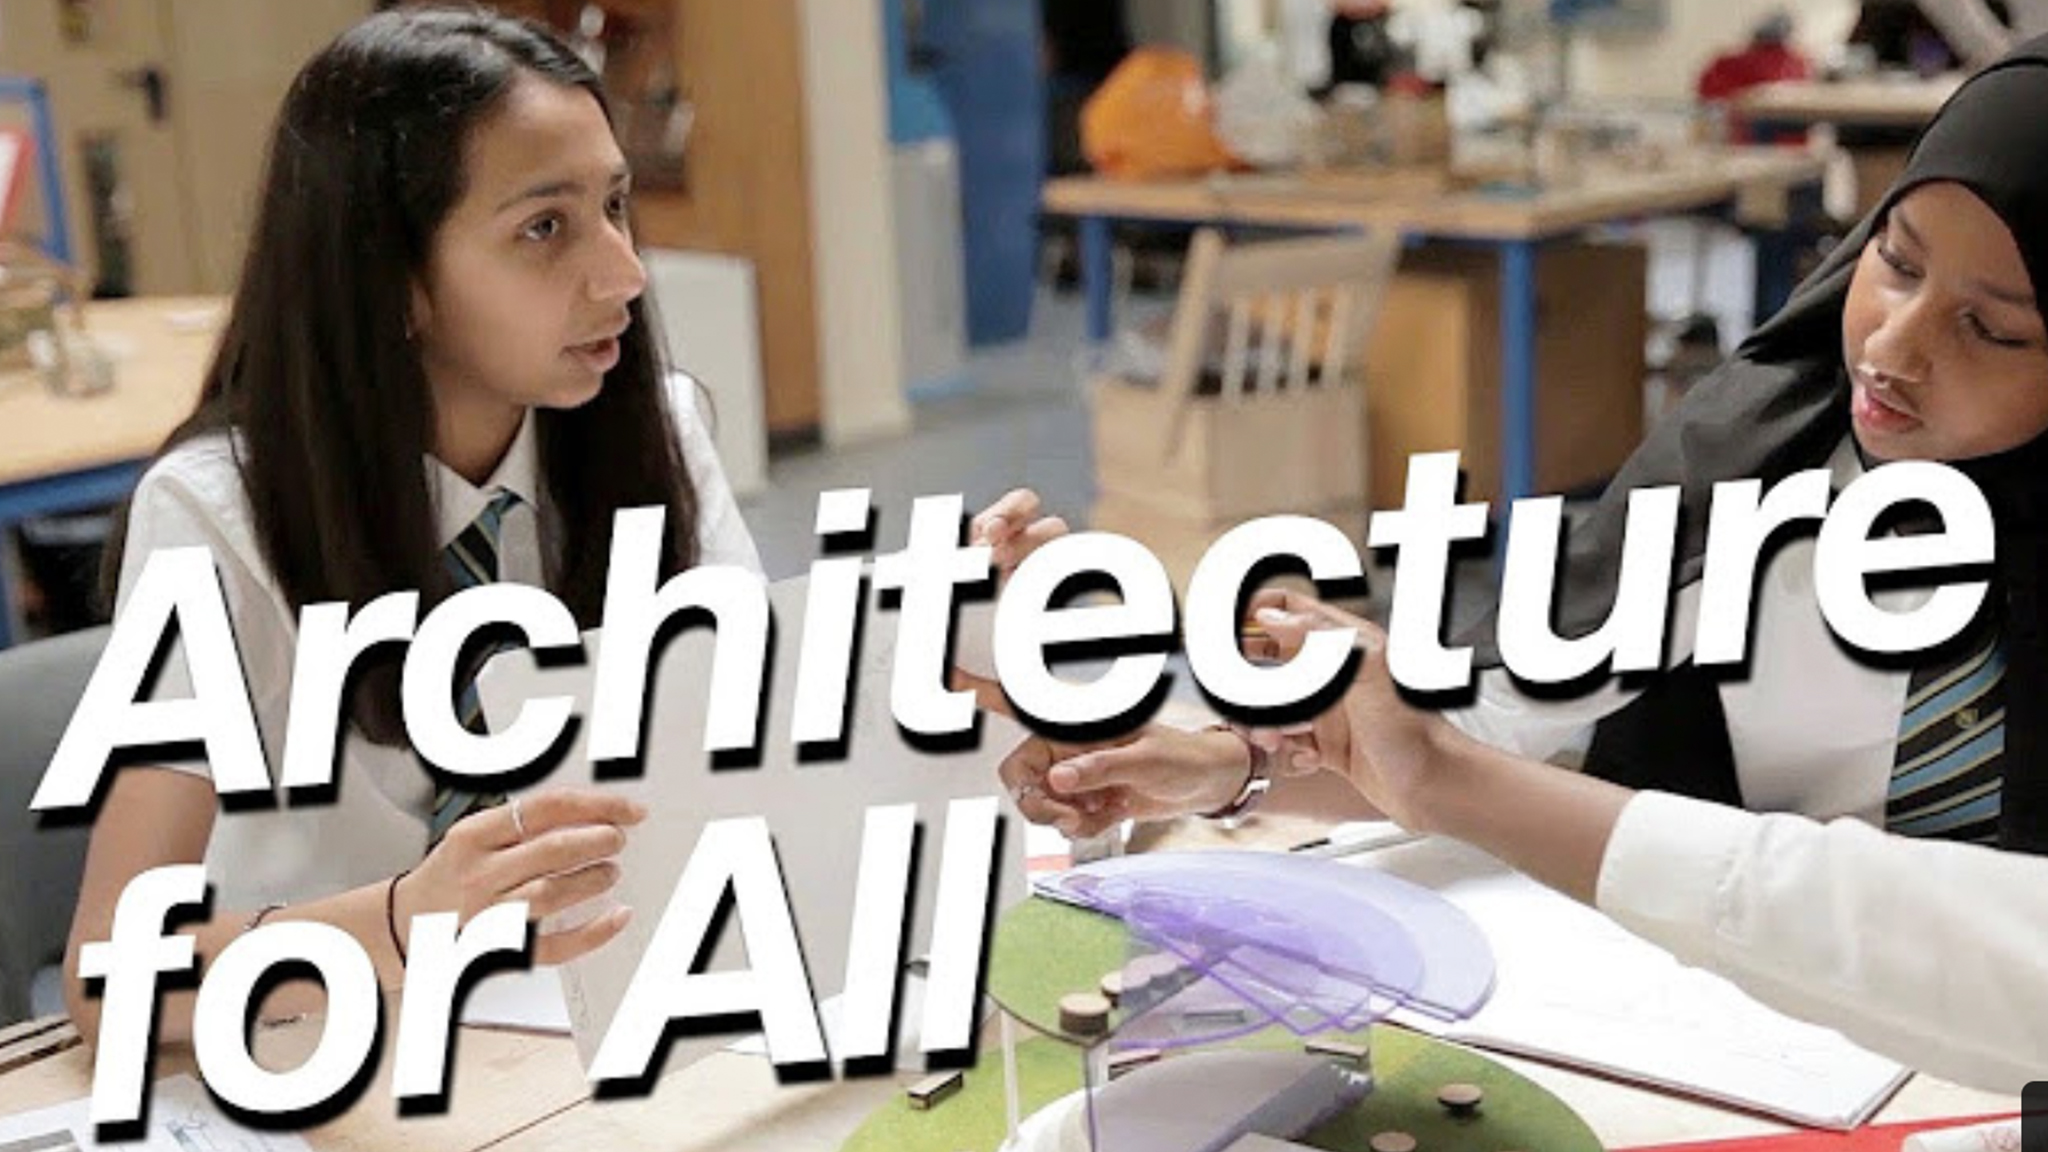 Architecture for all through education